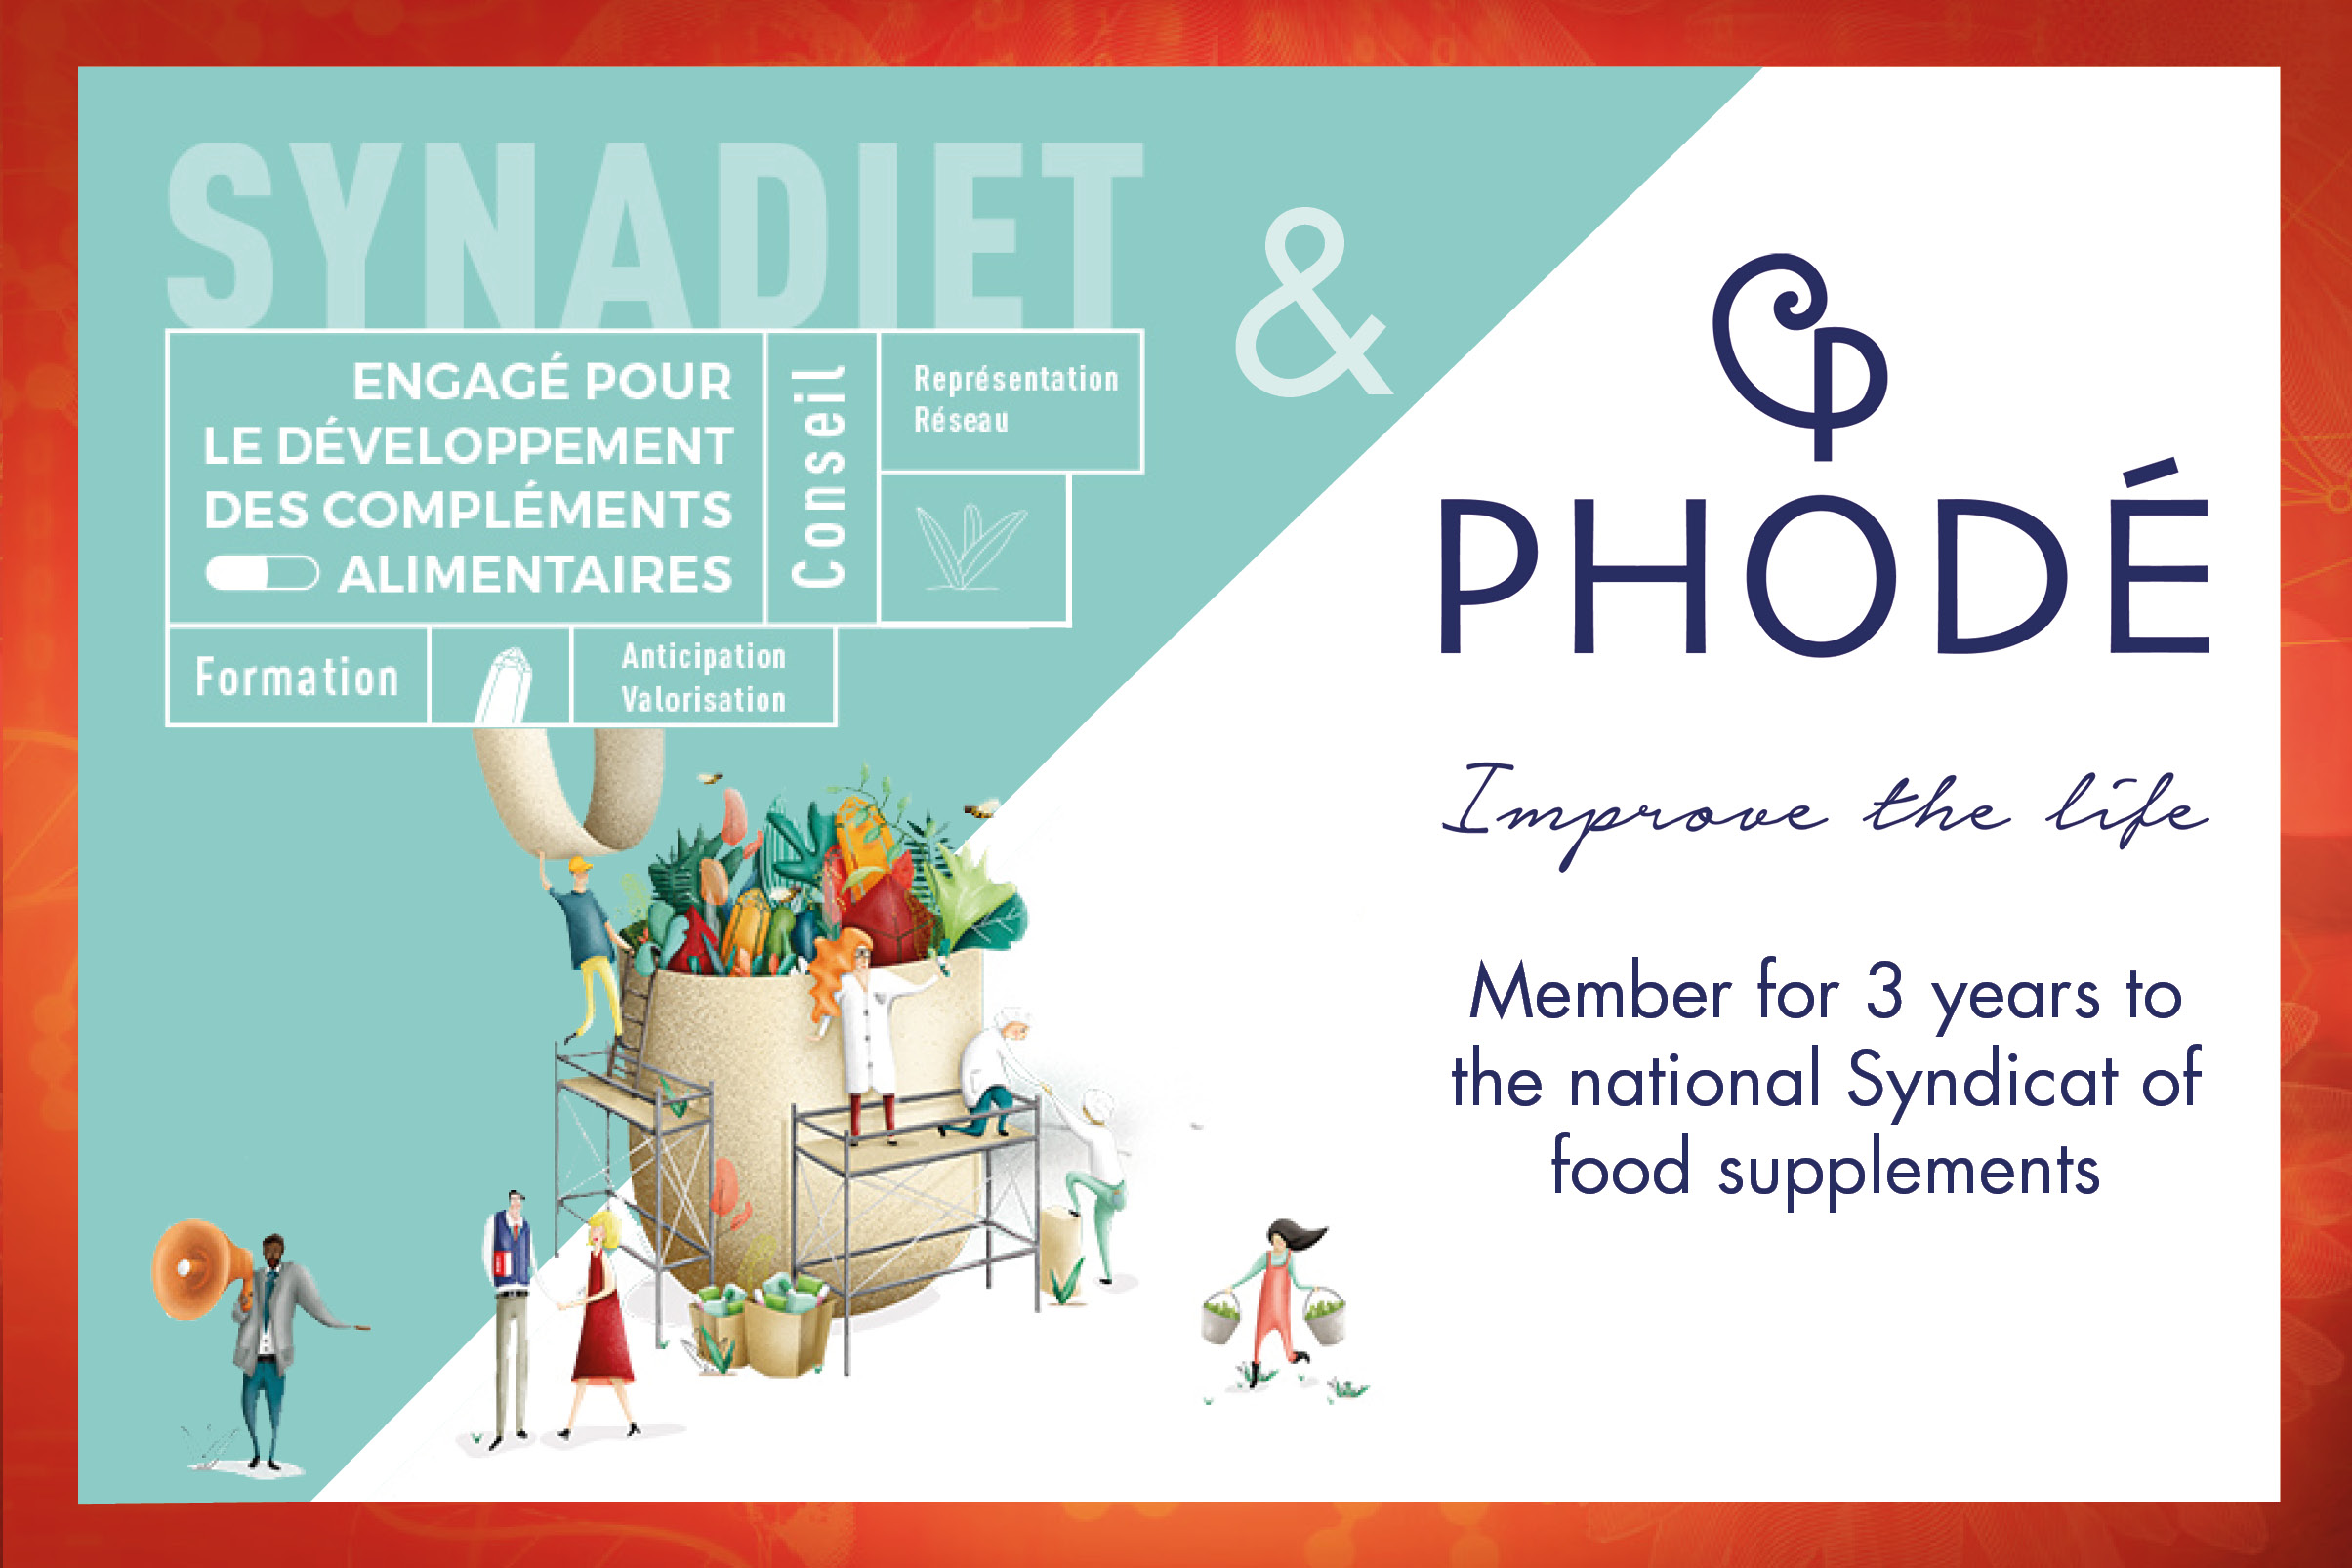 national Syndicat of food supplements